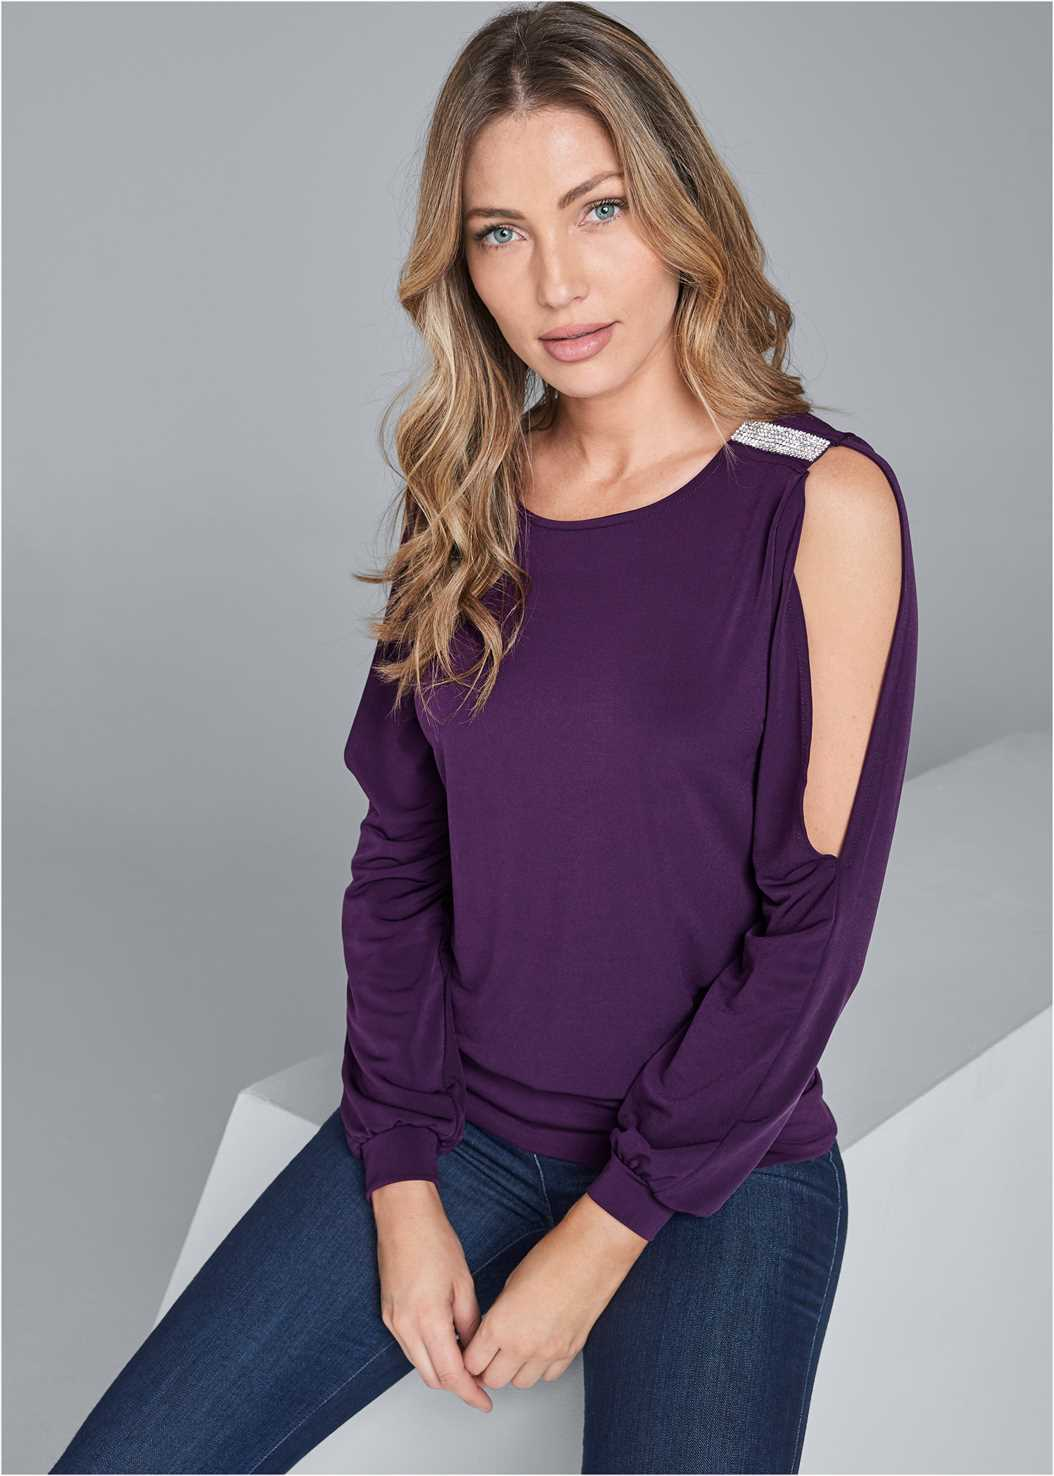 Sleeve Detail Top,Mid Rise Color Skinny Jeans,Seamless Unlined Bra,High Heel Strappy Sandals